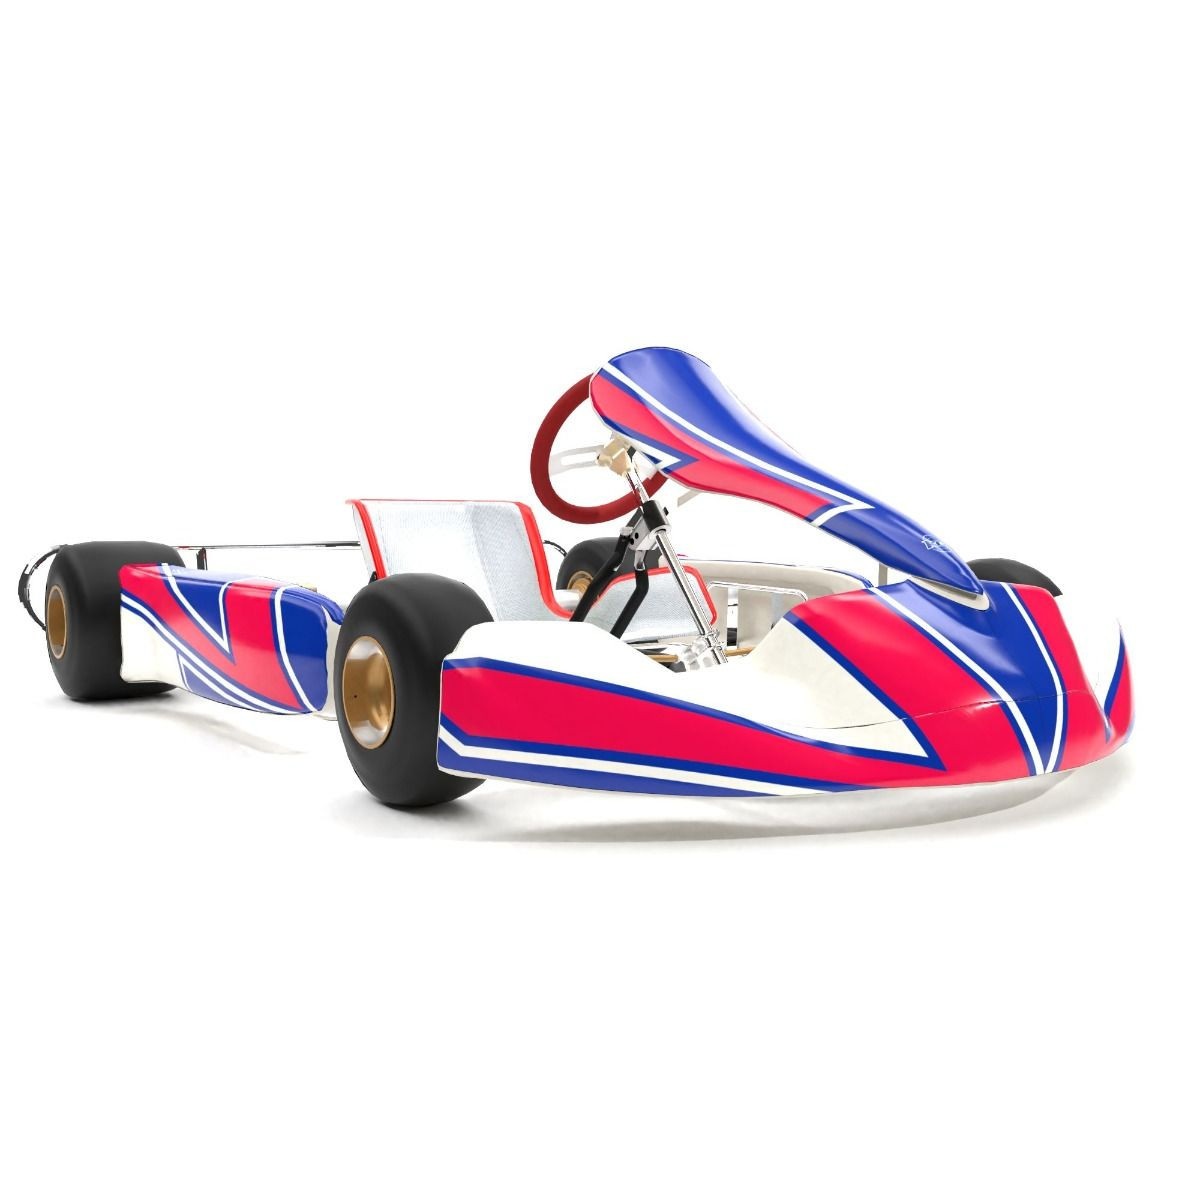 Kosmic 2019 Replica Kart Graphics Kit 3/4 View